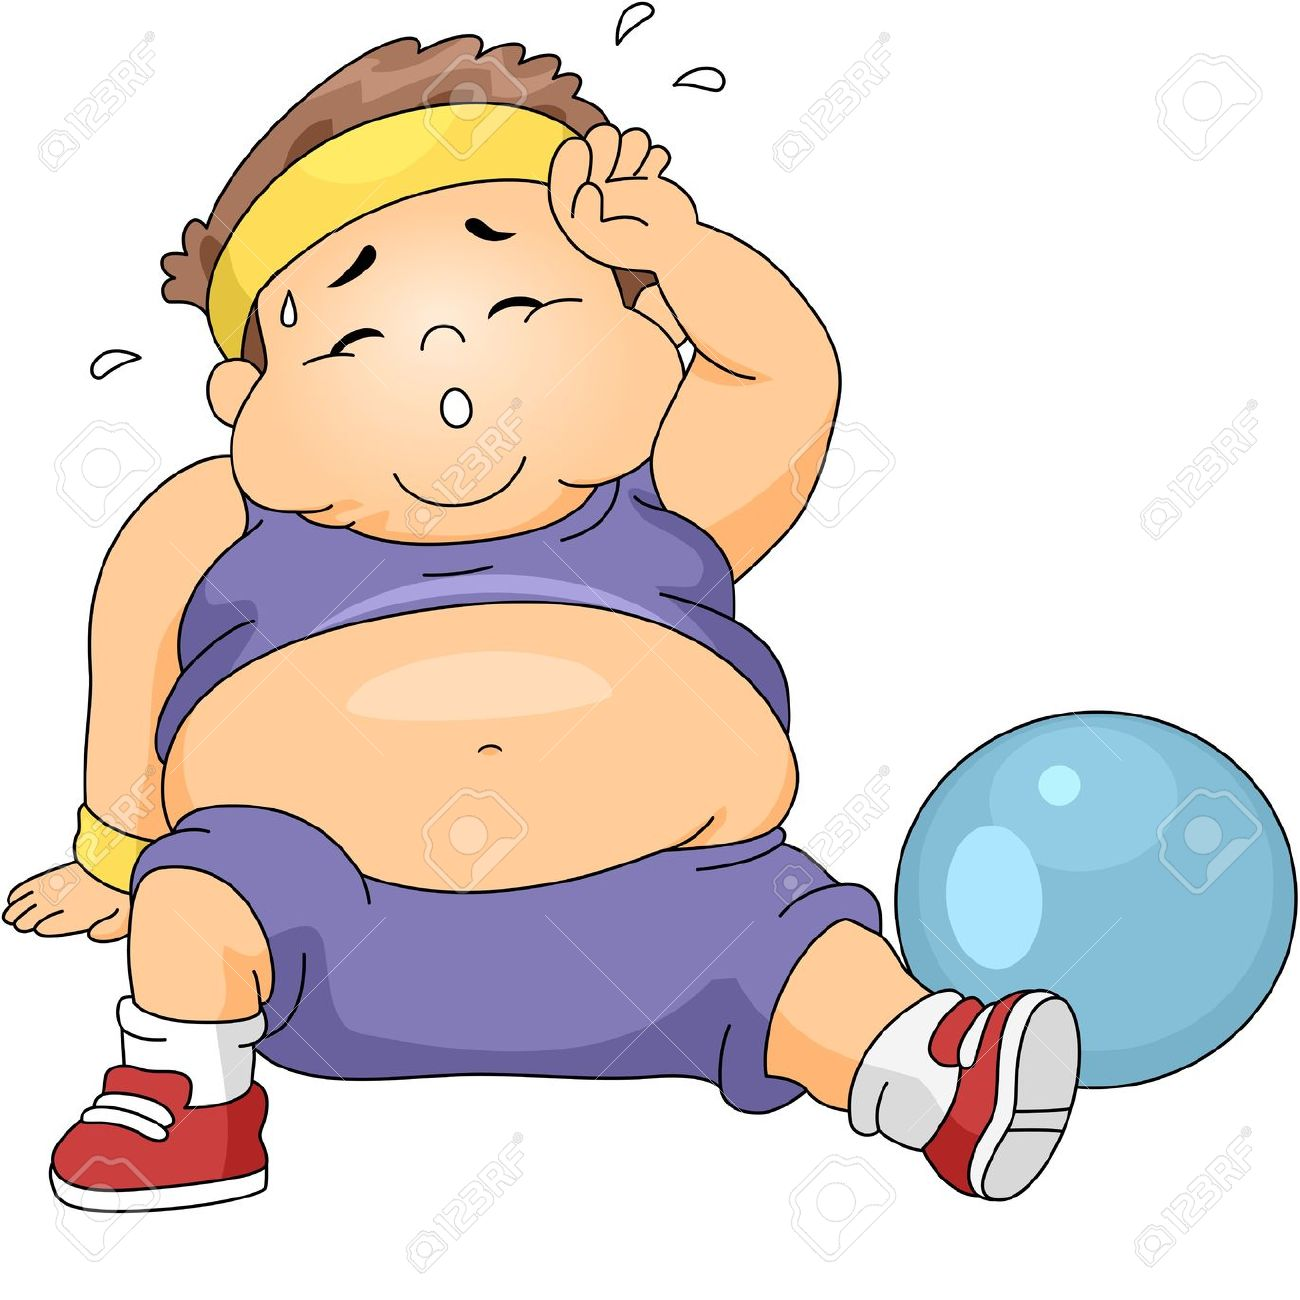 Illustration Of An Overweight Boy Exercising Stock Photo, Picture.